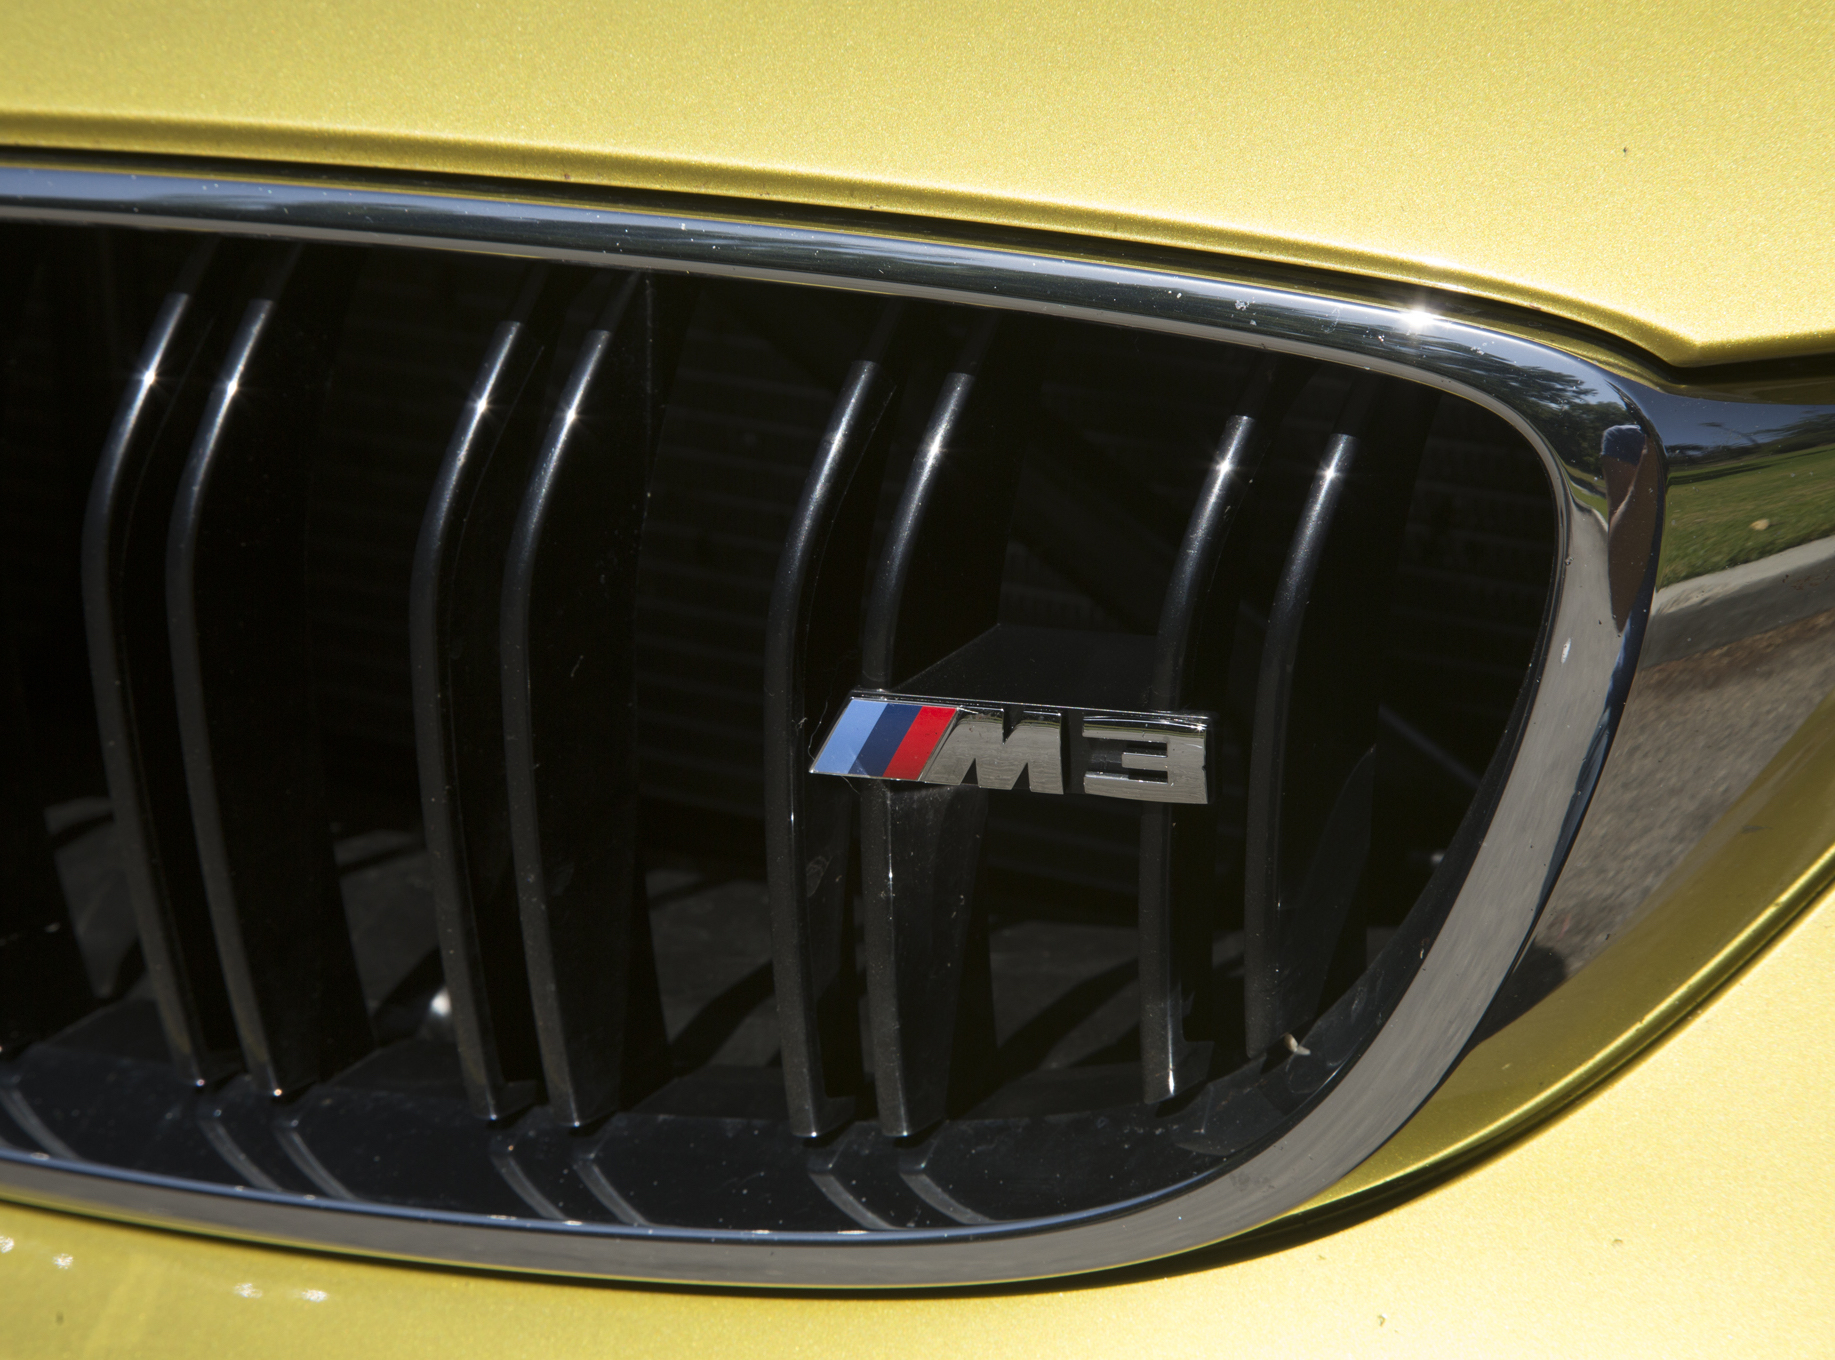 BMW M3 best resale value in class